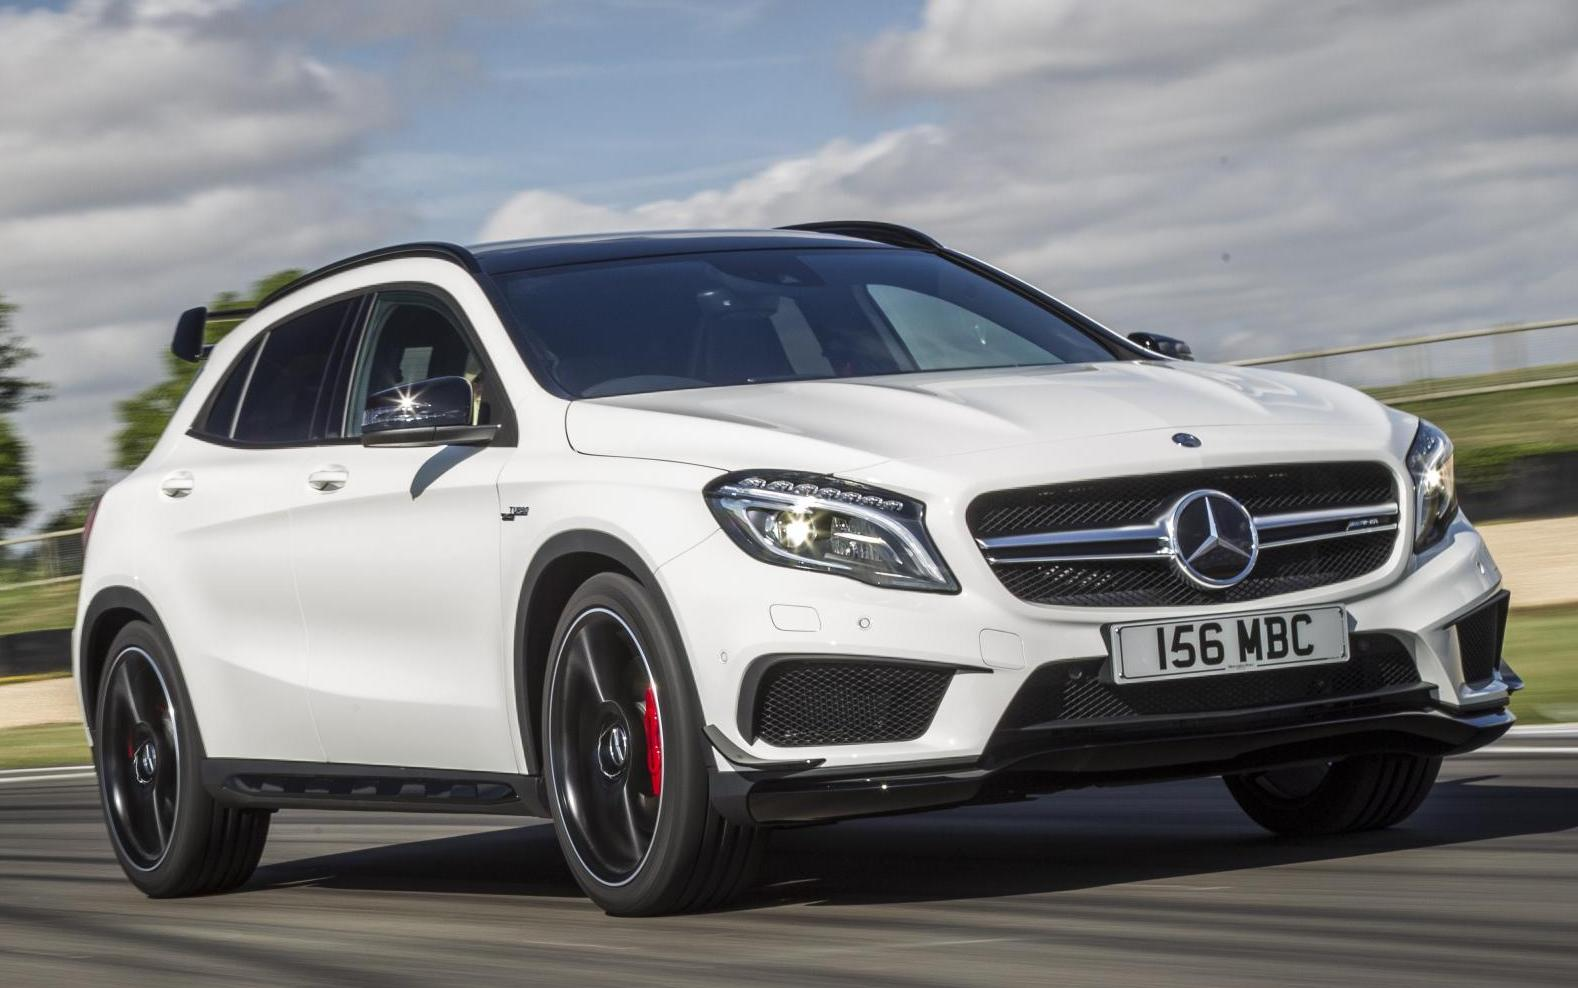 Mercedes benz gla 45 amg launched priced at rs lakh for Mercedes benz gla suv price